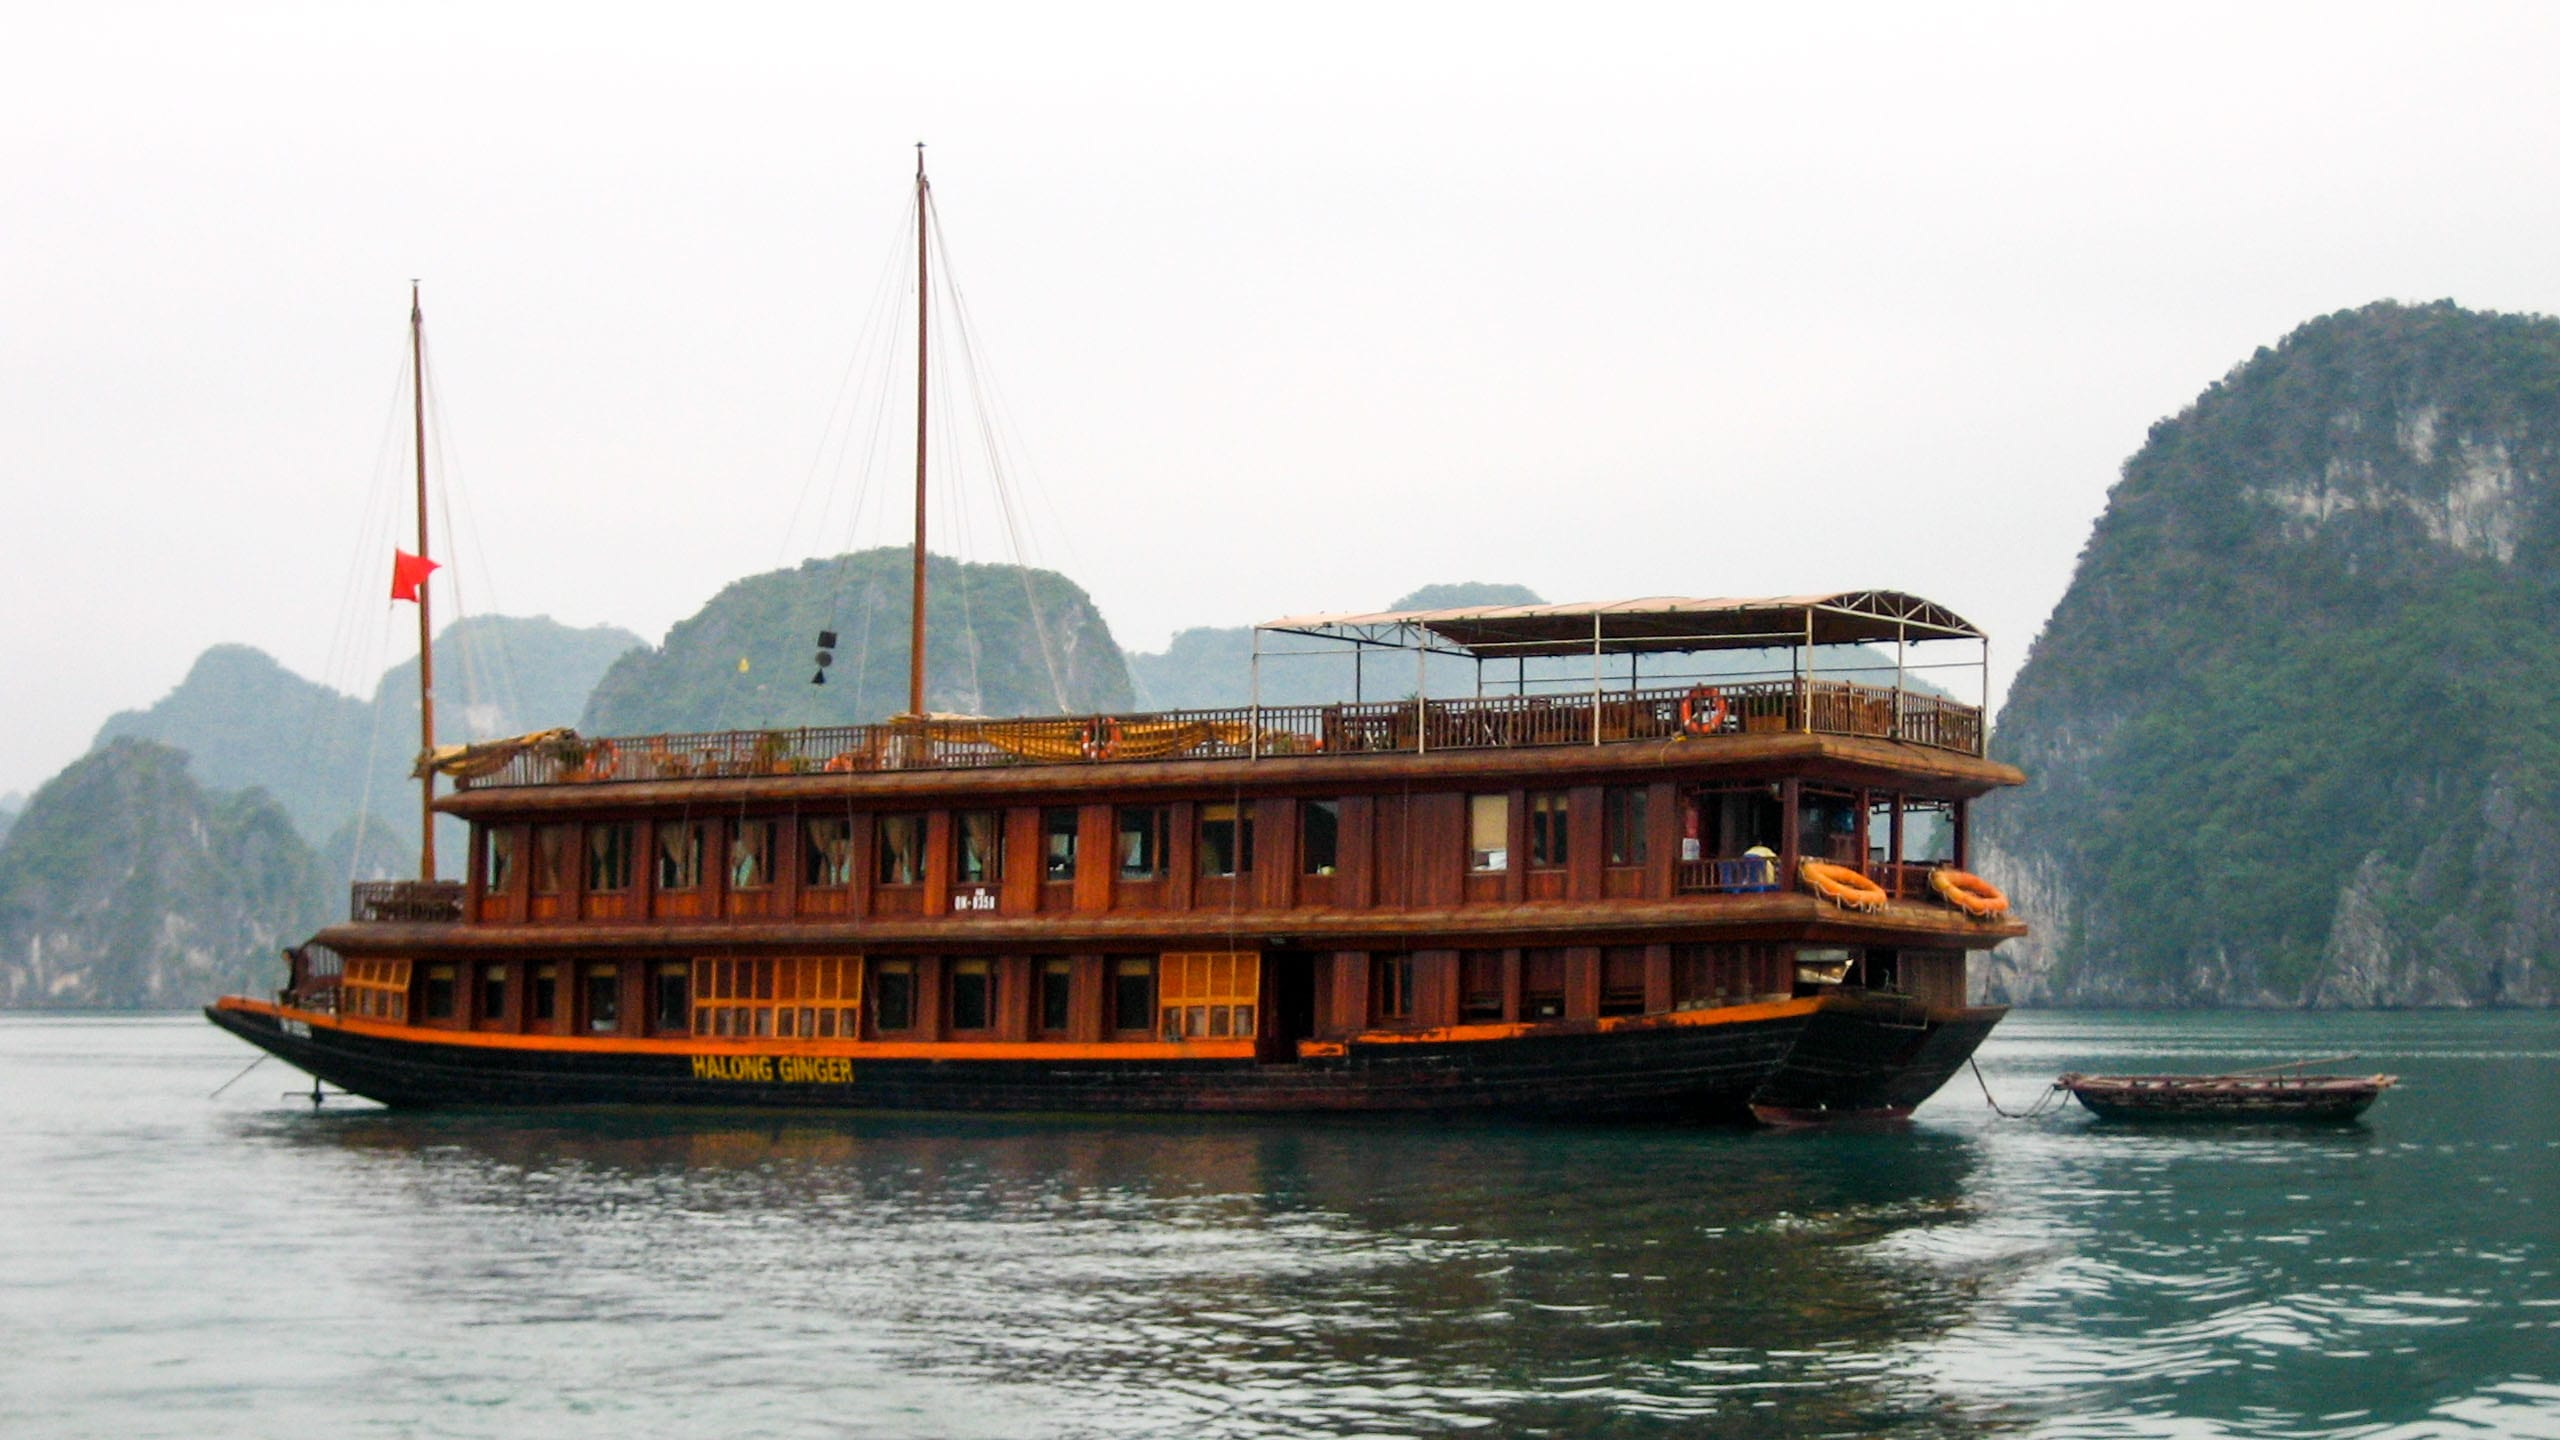 River boat on the Mekong River in Vietnam